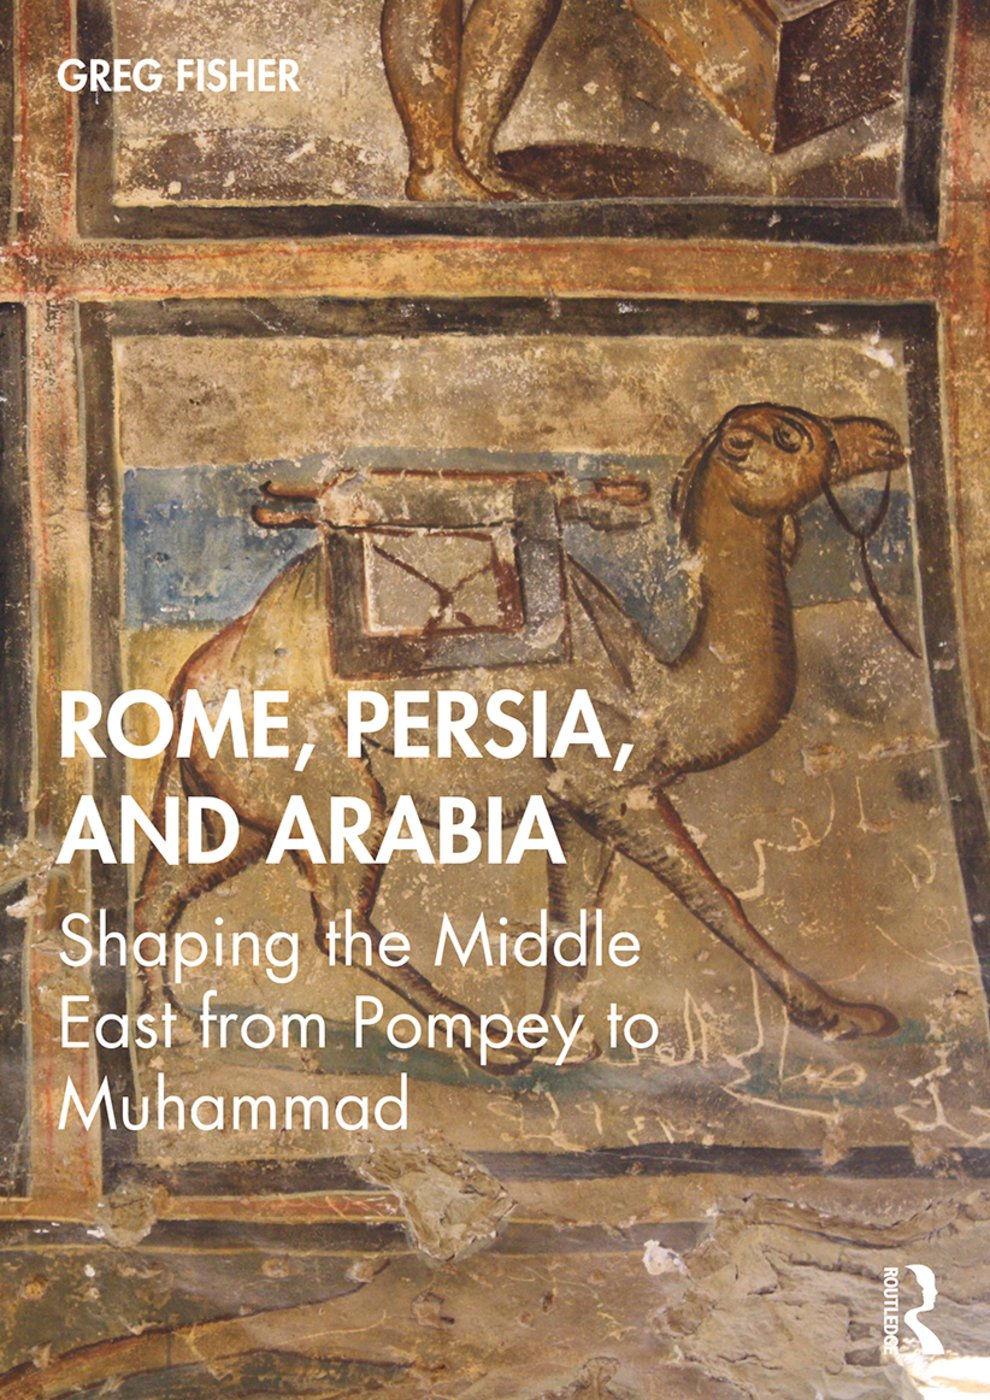 Rome, Persia, and Arabia